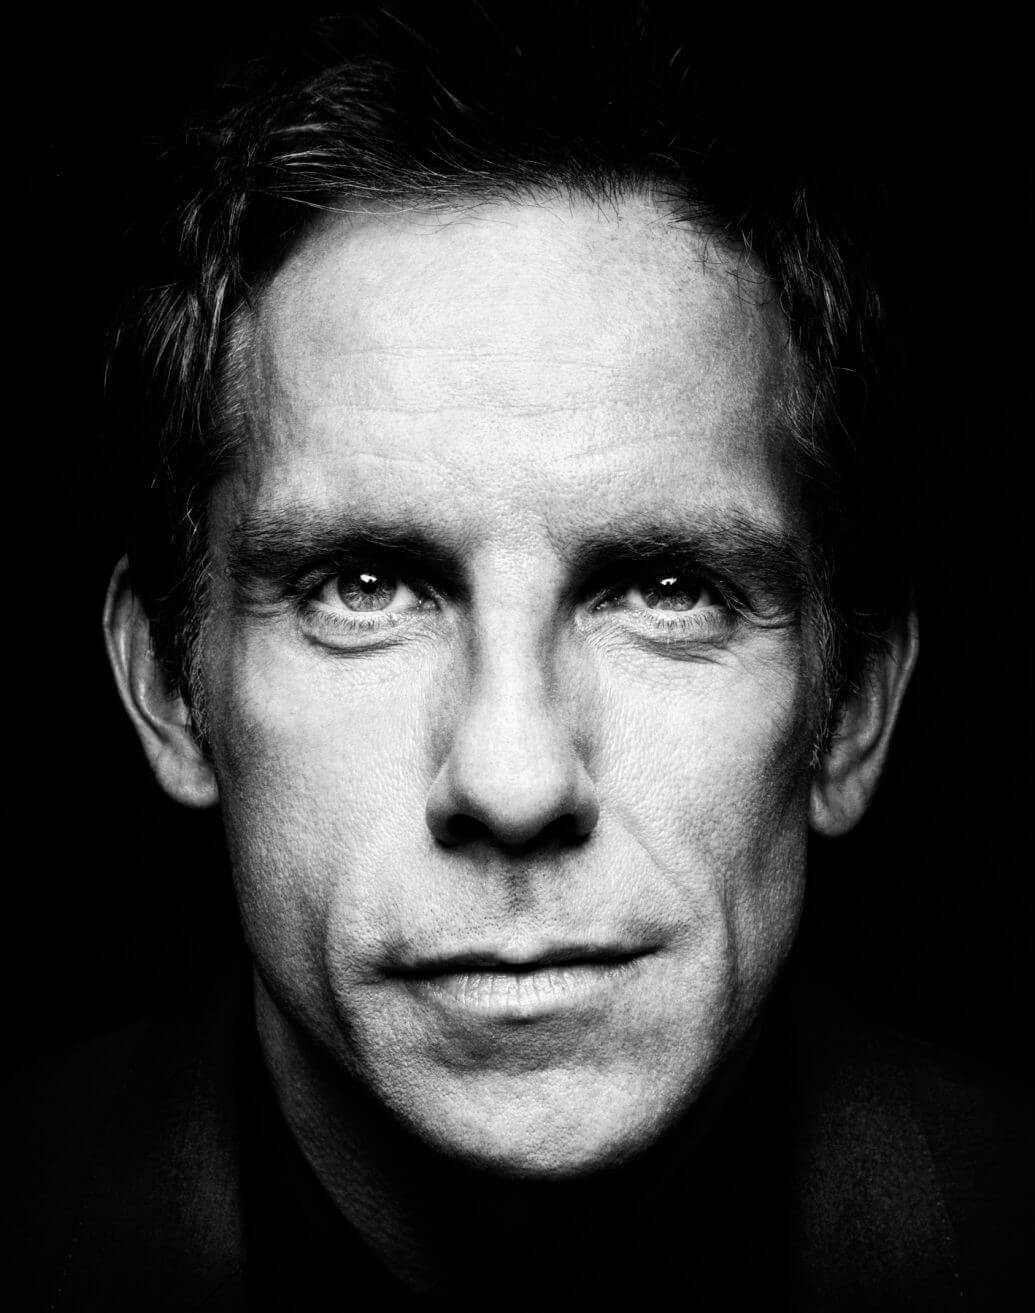 Best black and white portraits by Platon